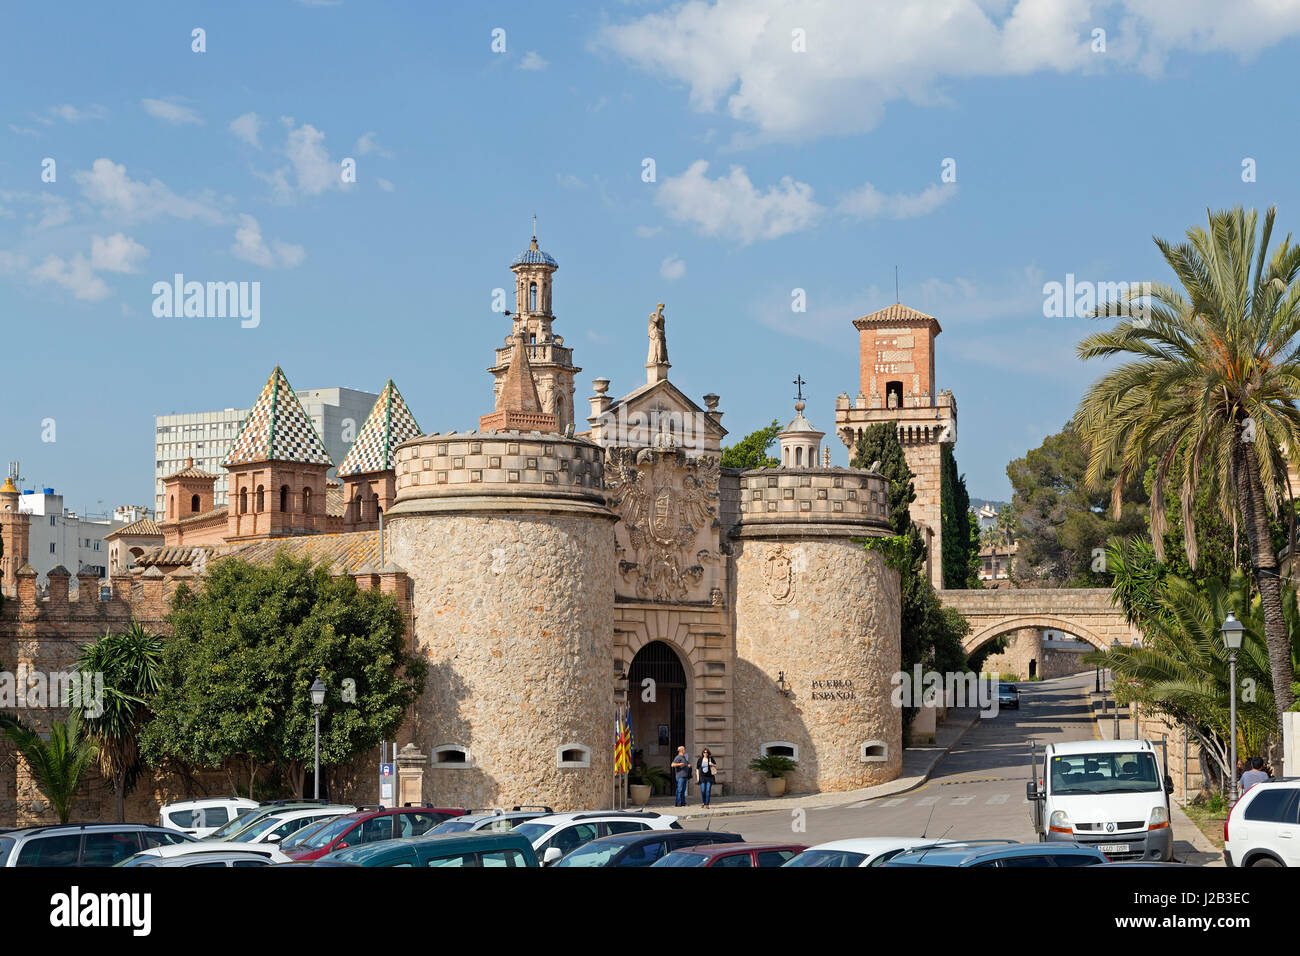 entrance portal of Poble Espanyol in Palma de Mallorca, Spain - Stock Image